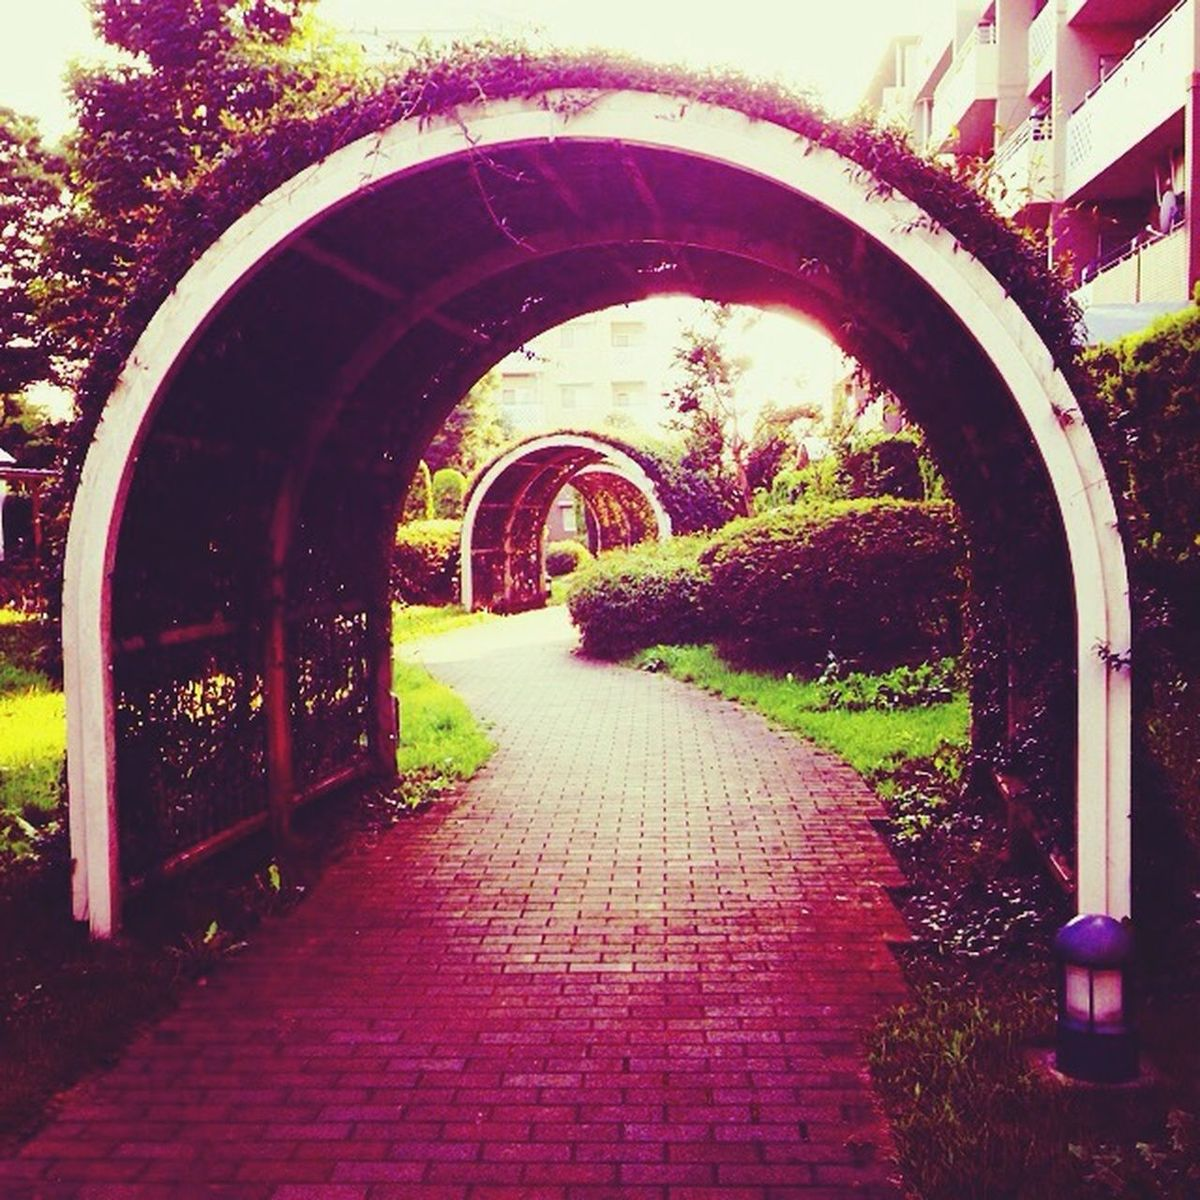 The arches Japan Inzai